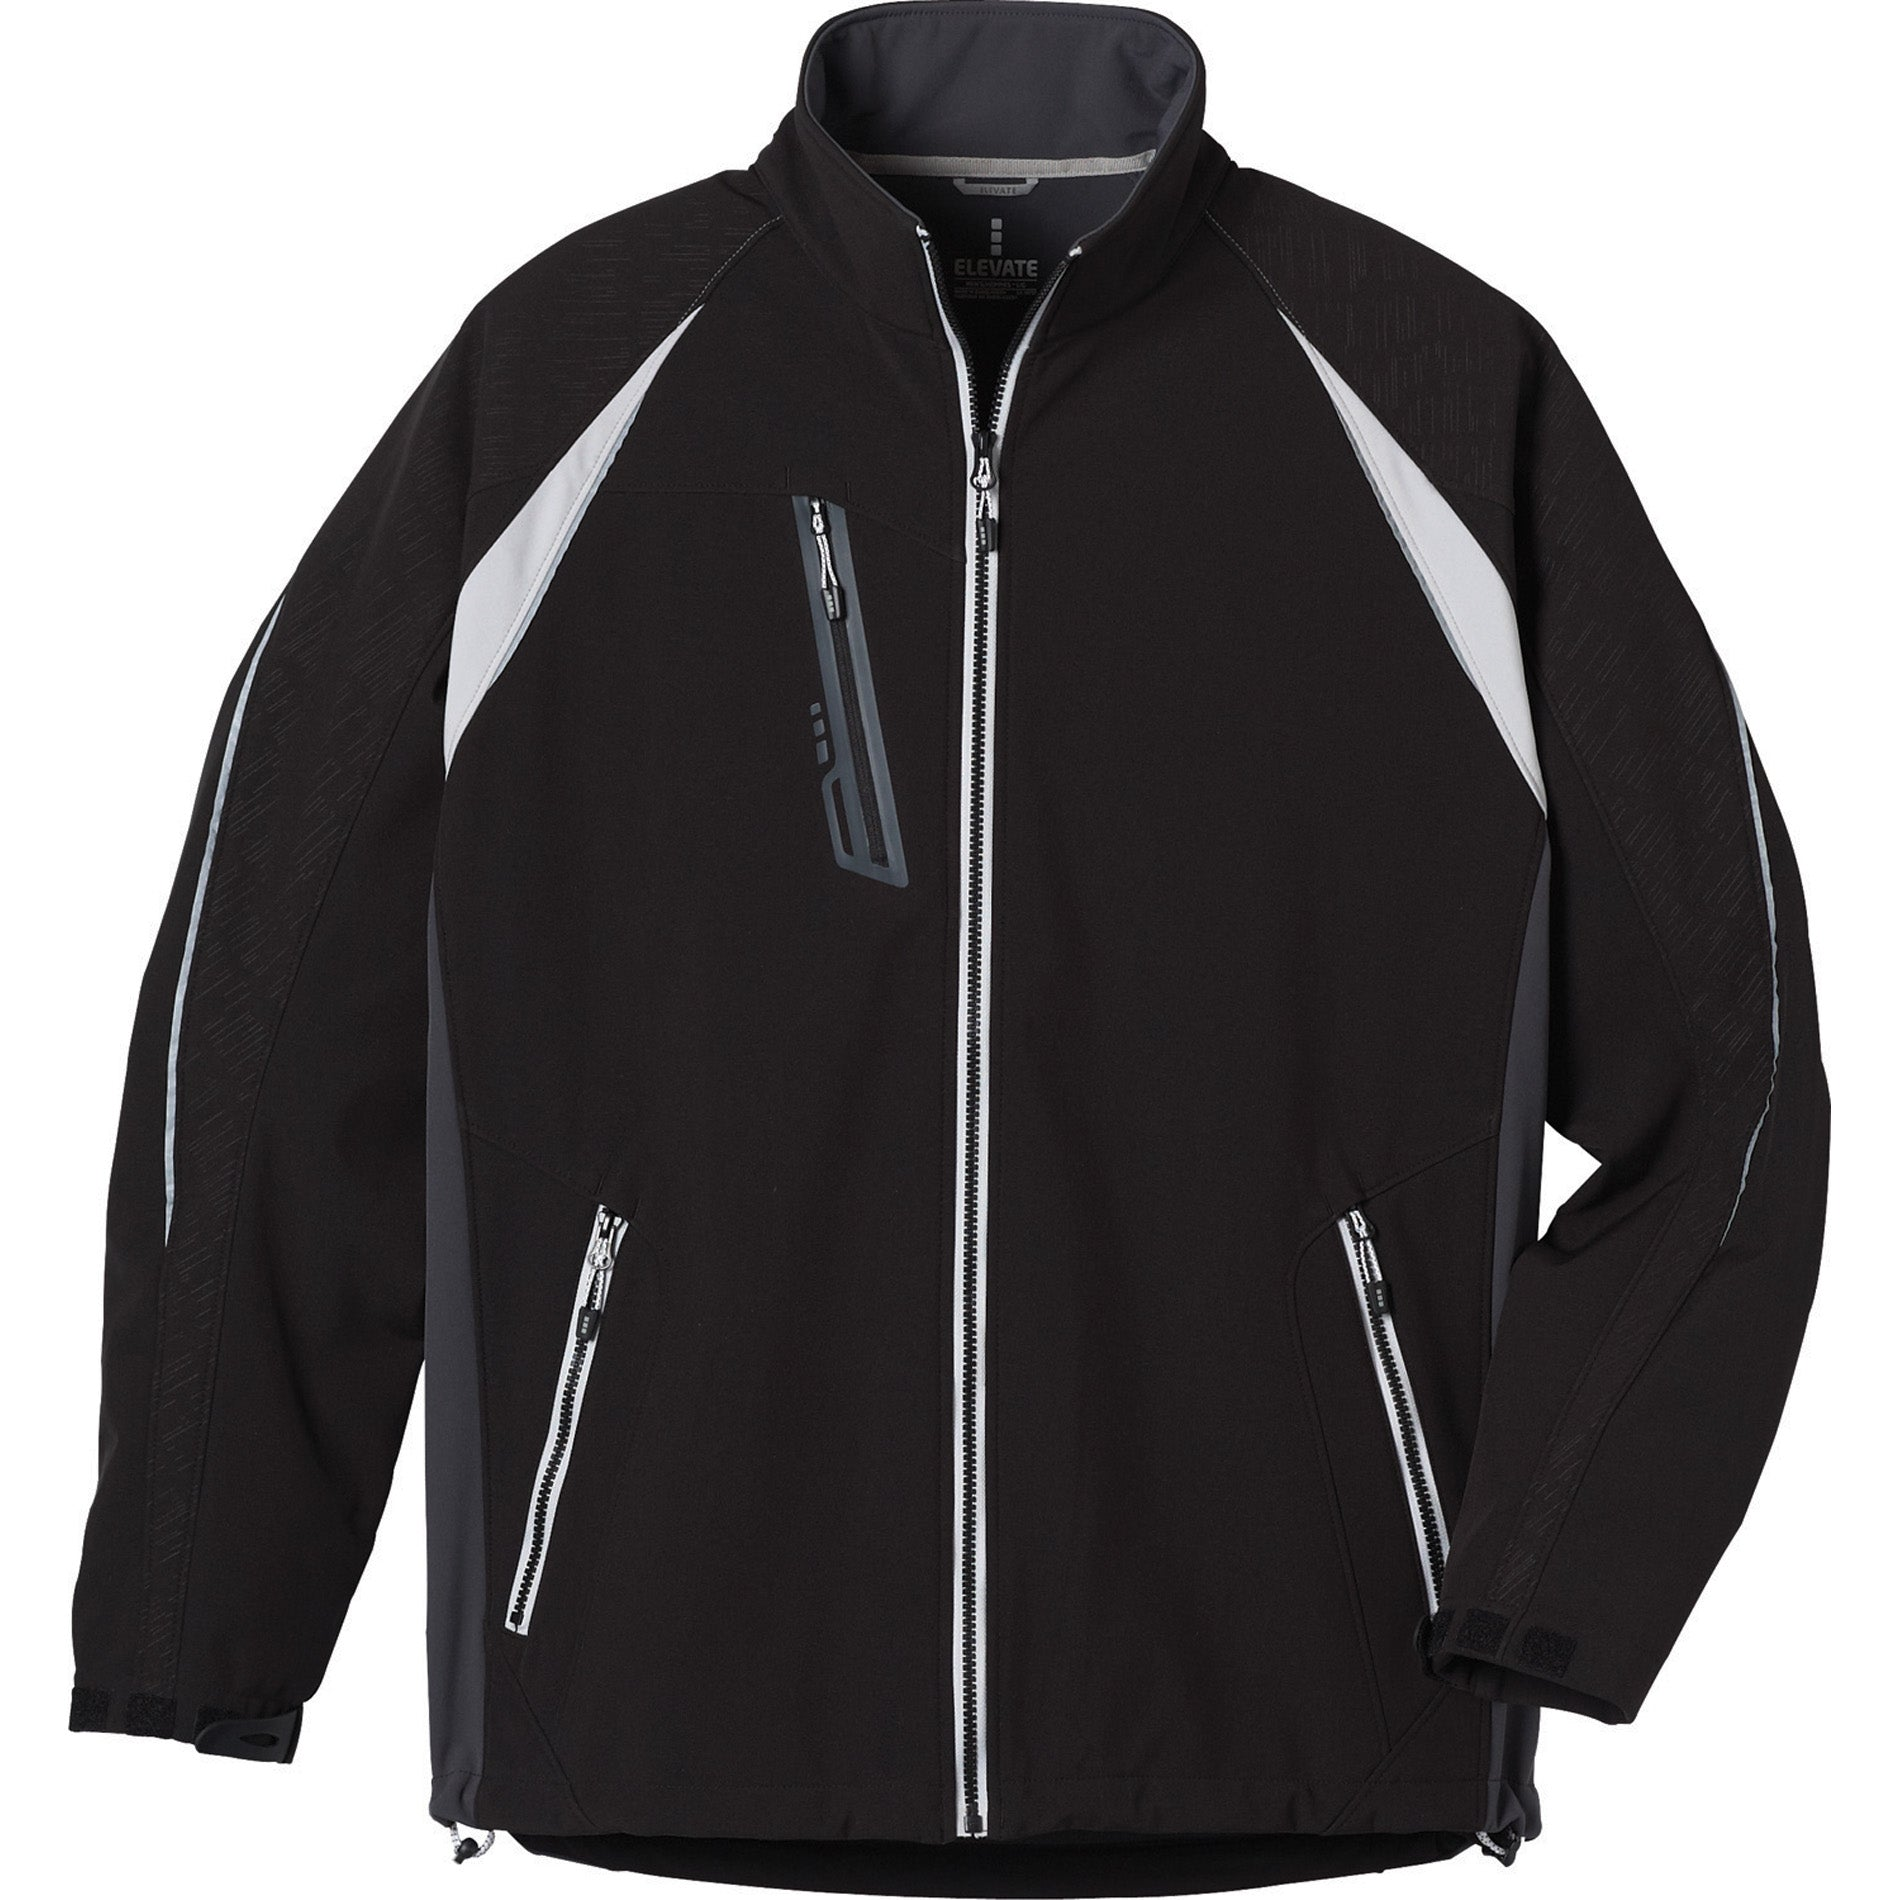 STOCK ELEVATE MEN'S KATAVI SOFT SHELL JACKET